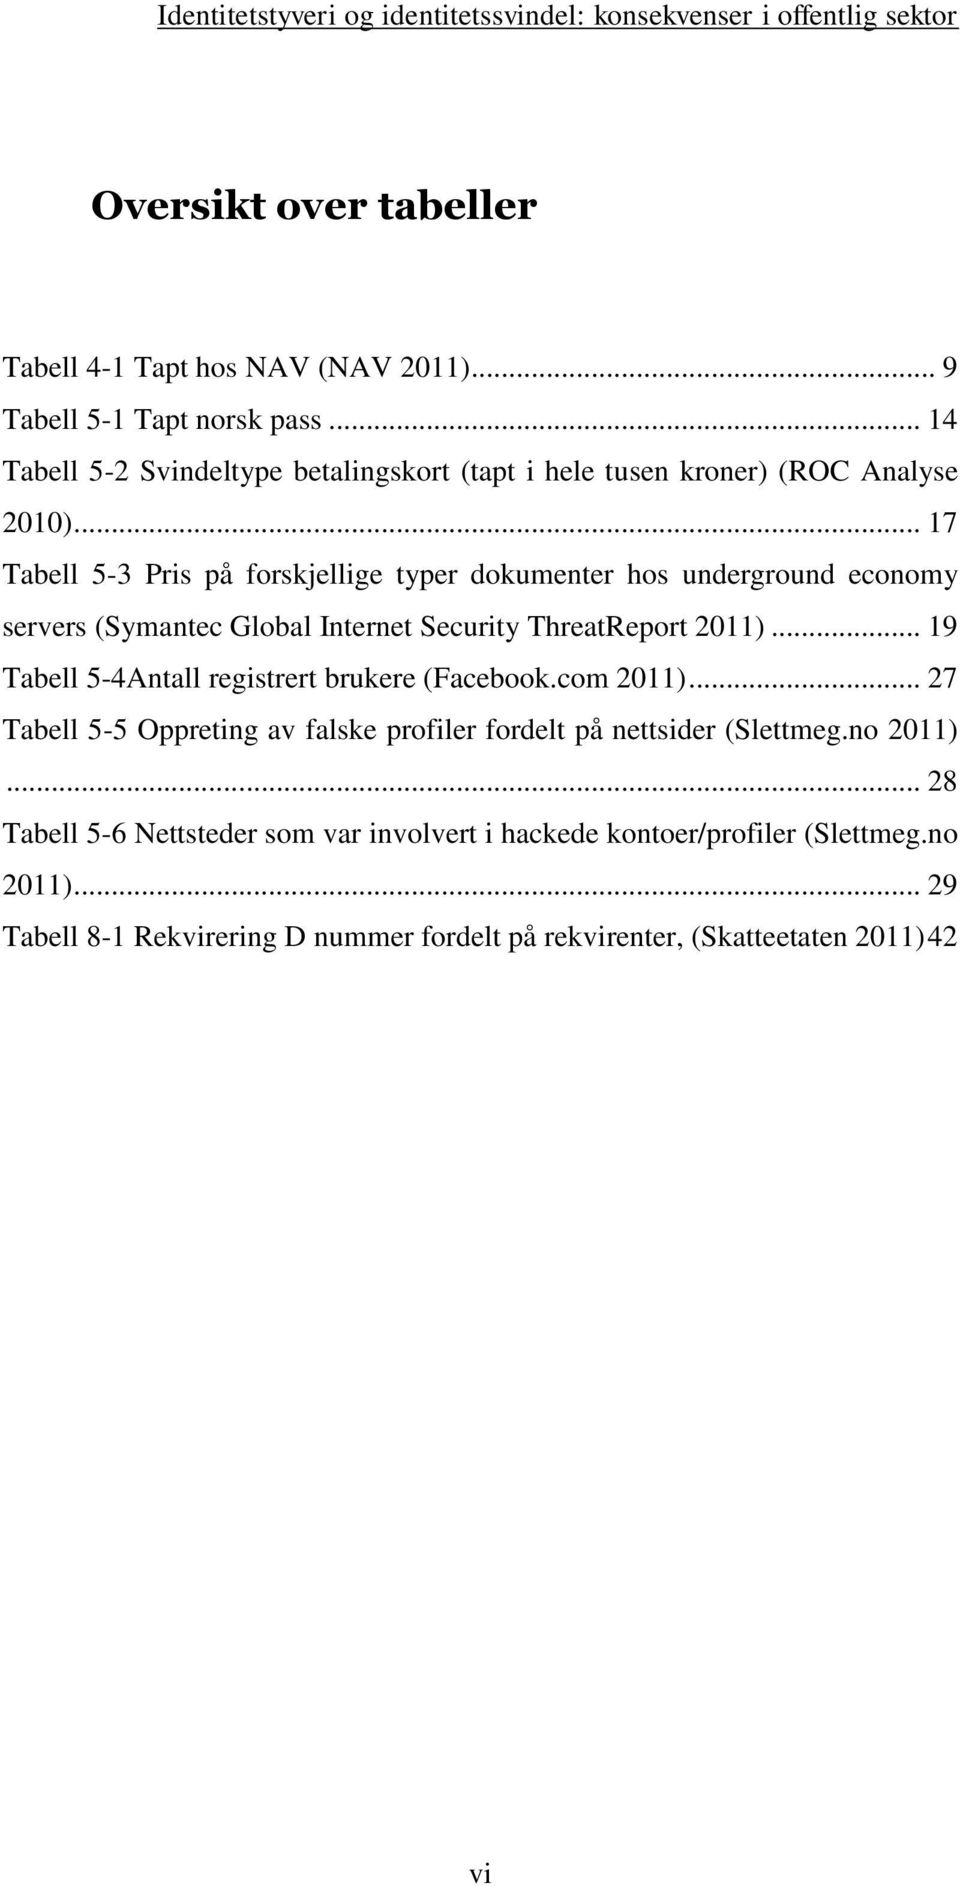 .. 17 Tabell 5-3 Pris på forskjellige typer dokumenter hos underground economy servers (Symantec Global Internet Security ThreatReport 2011).